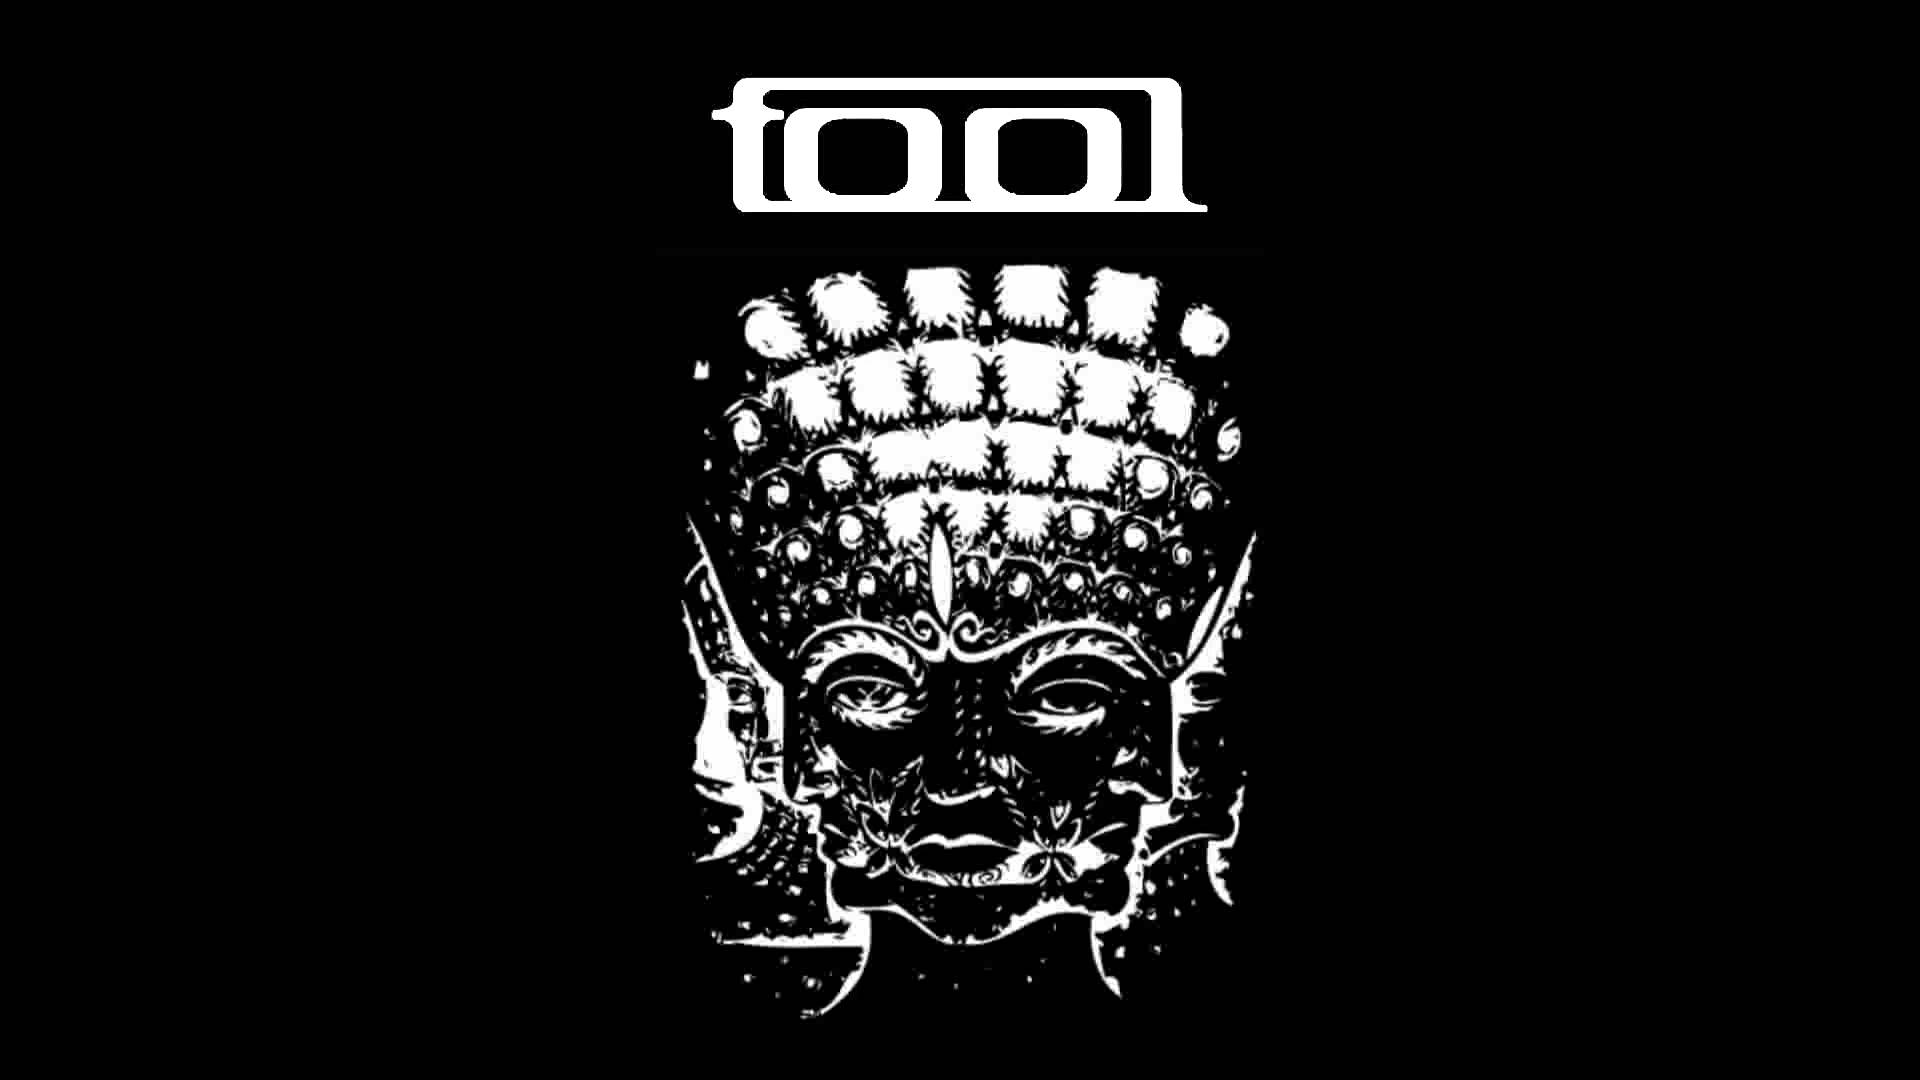 Tool Pictures HQ Wallpapers